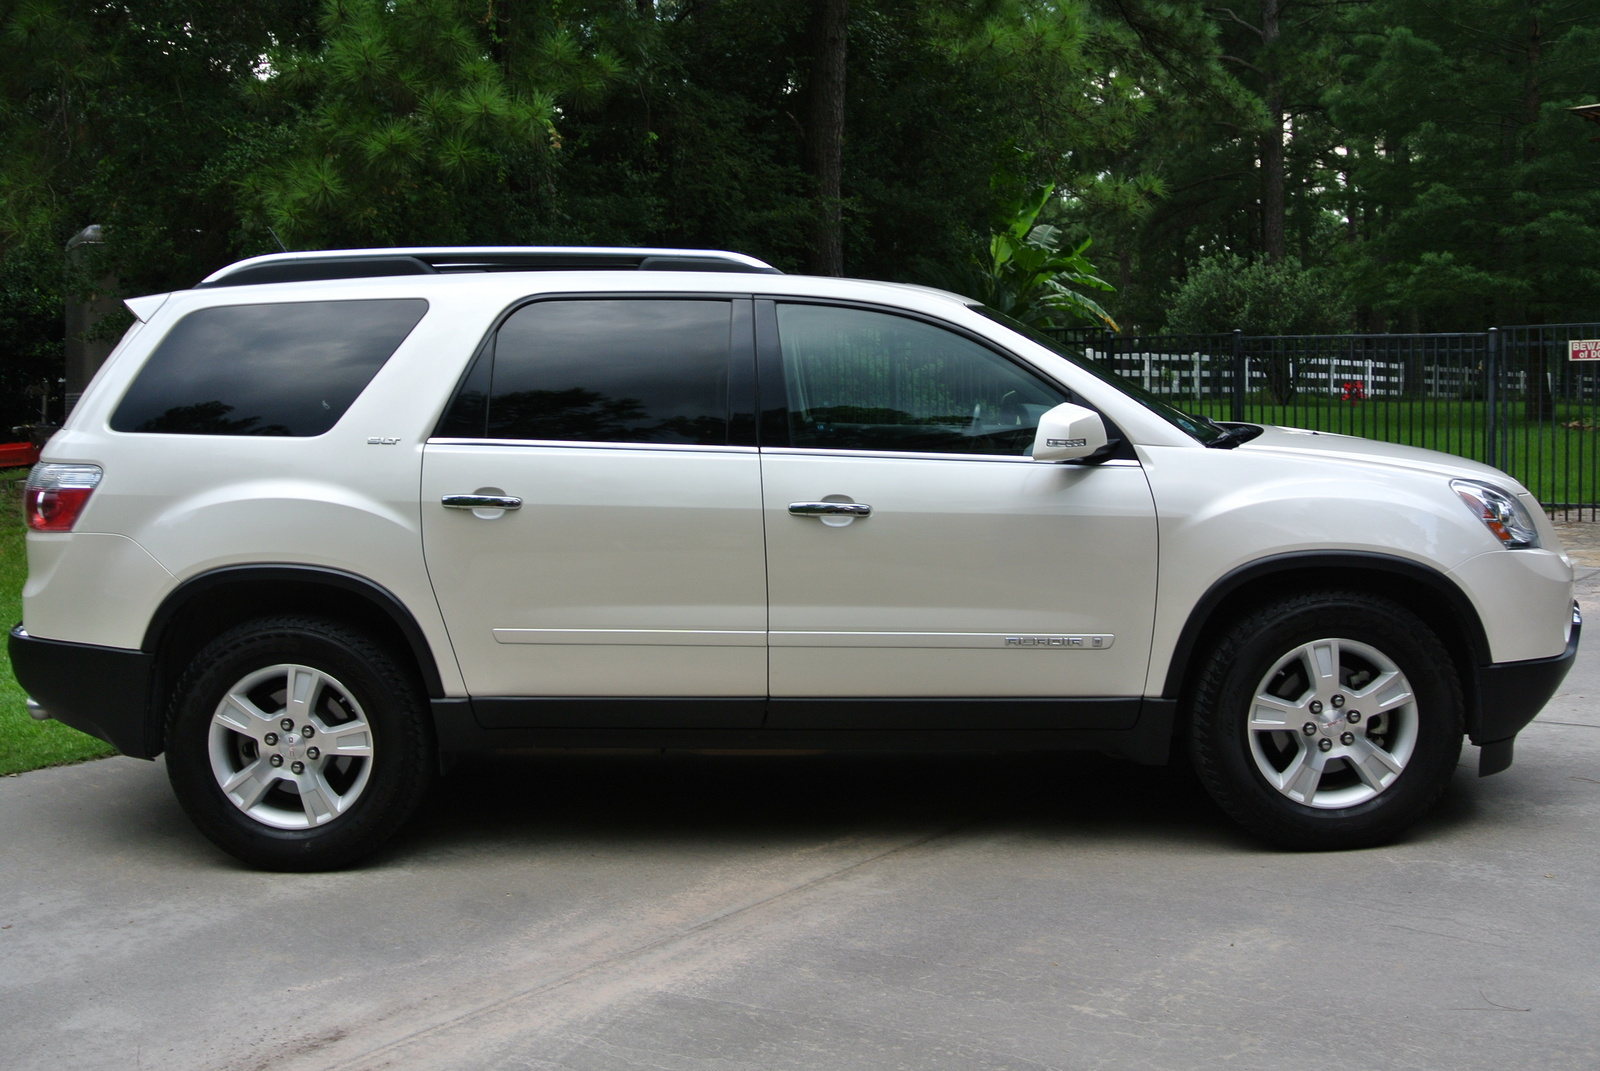 2012 Gmc Acadia Overview Cargurus Autos Post